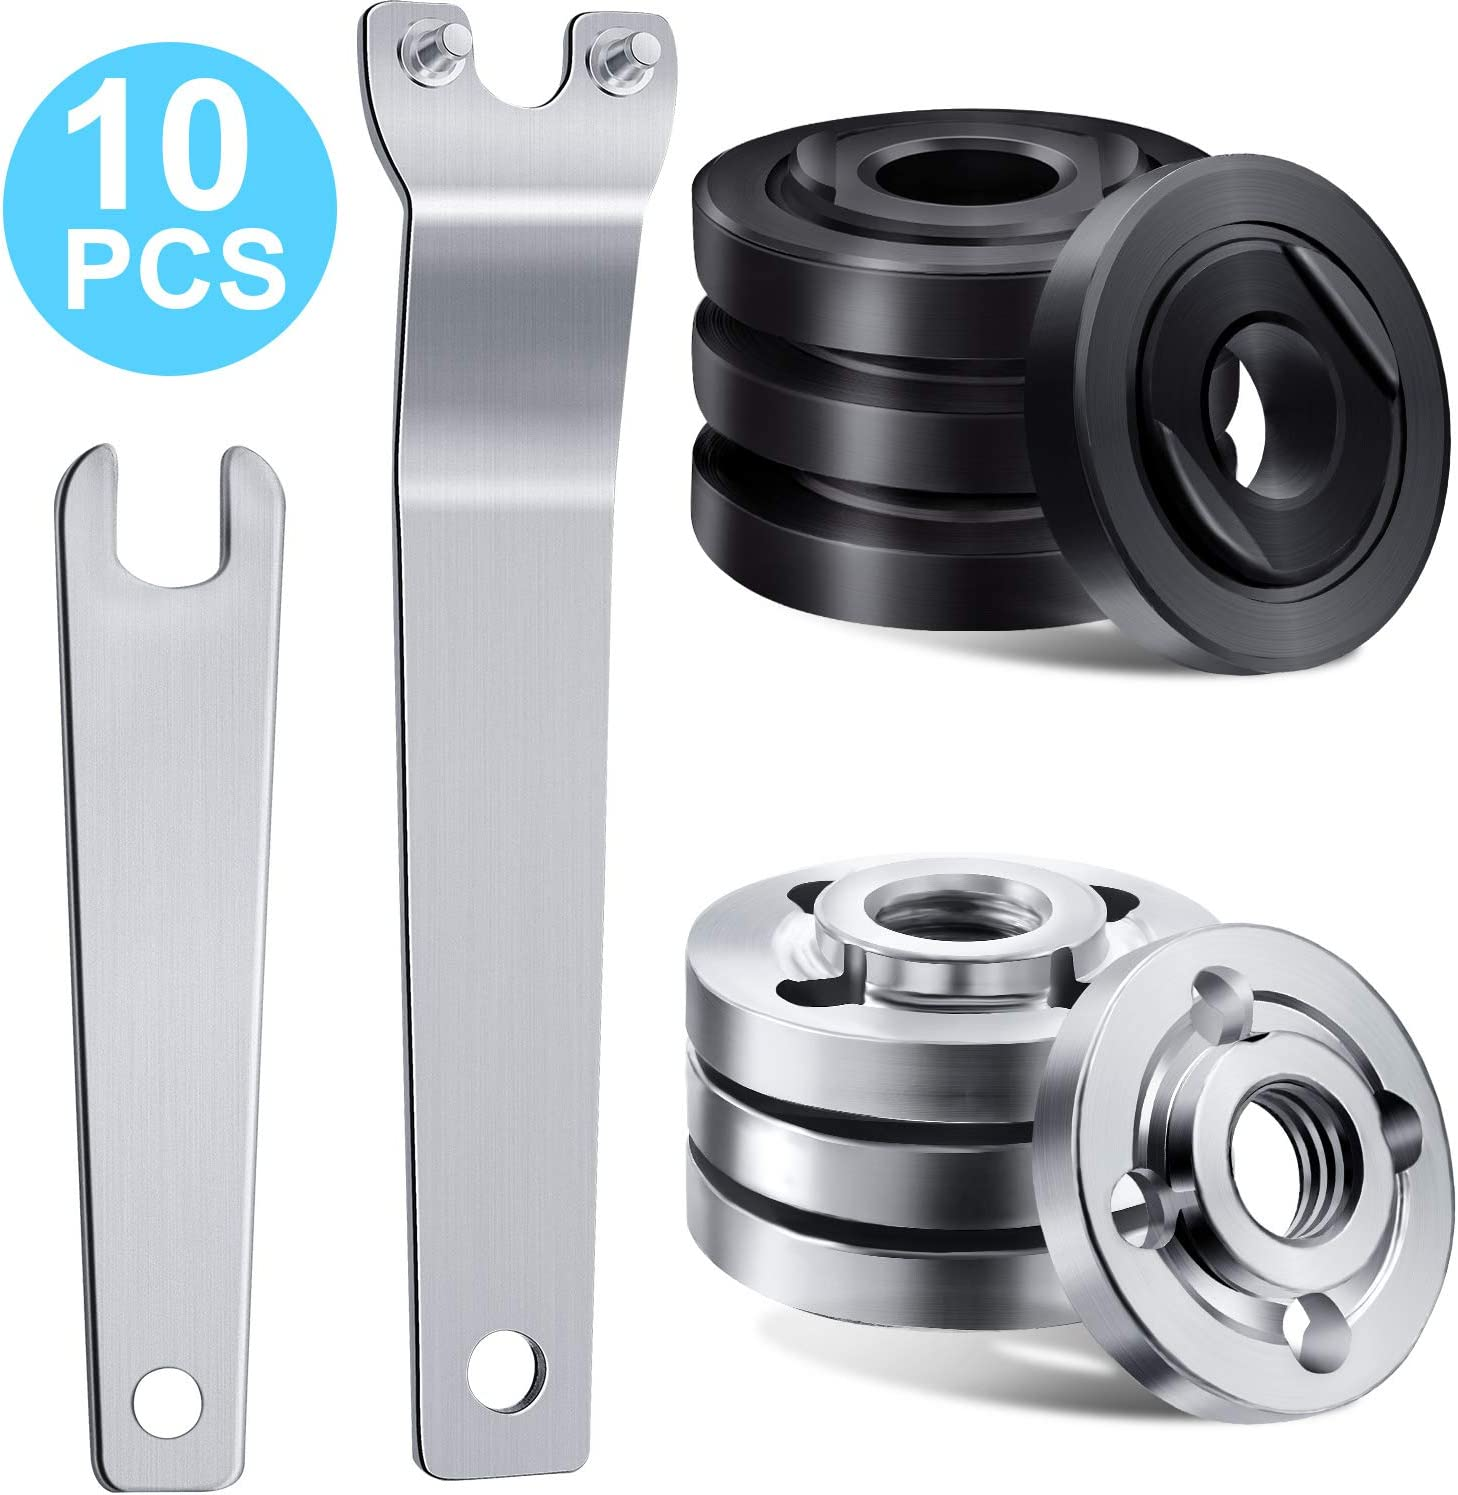 100mm Angle Grinder Replacement Parts - Angle Grinder Spanner and Inner Outer Flange Nut Compatible with Makita and Ryobi